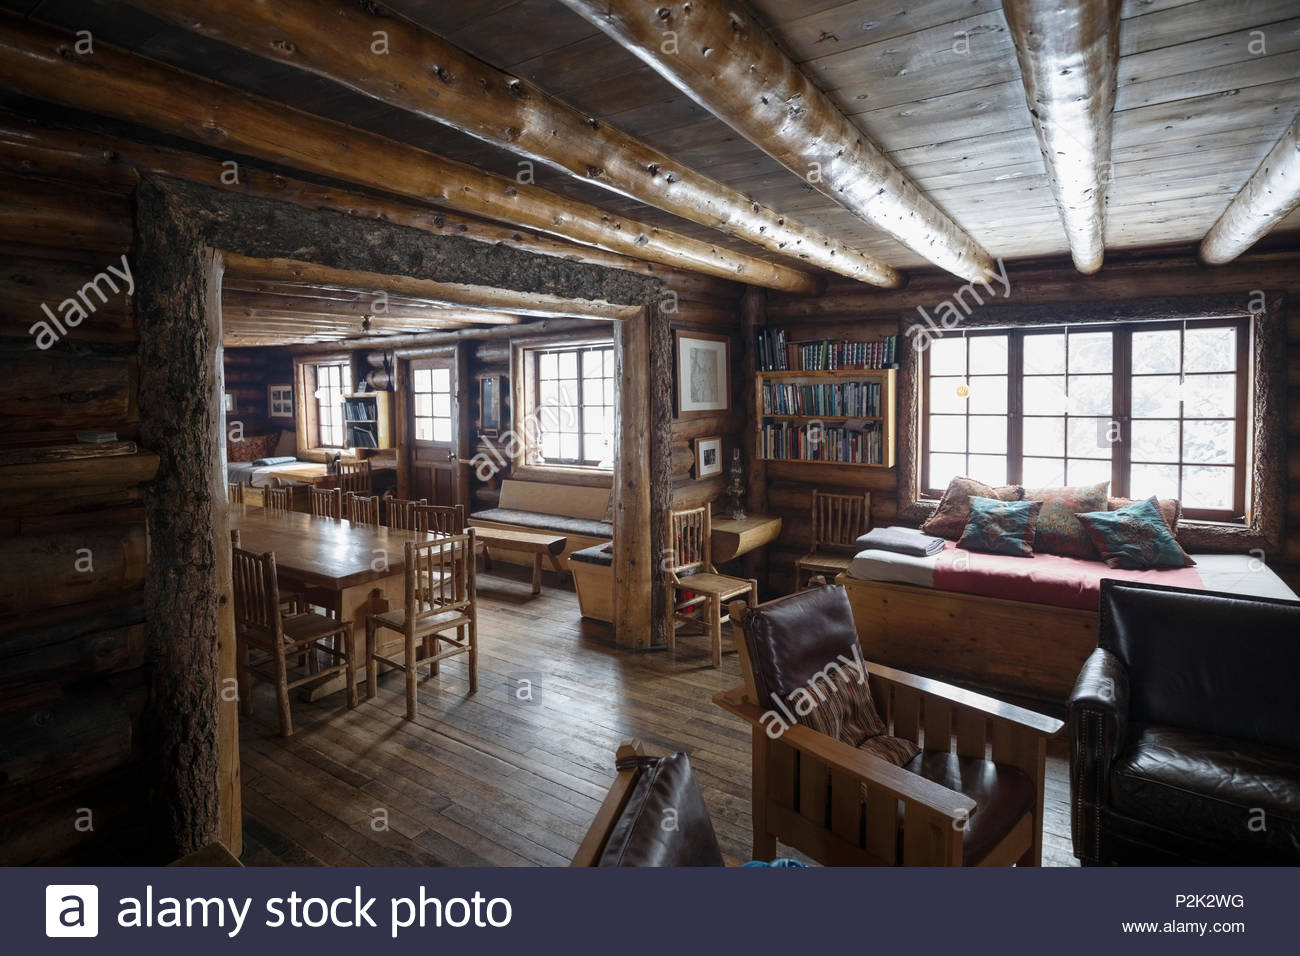 Rustic log cabin interior - Stock Image